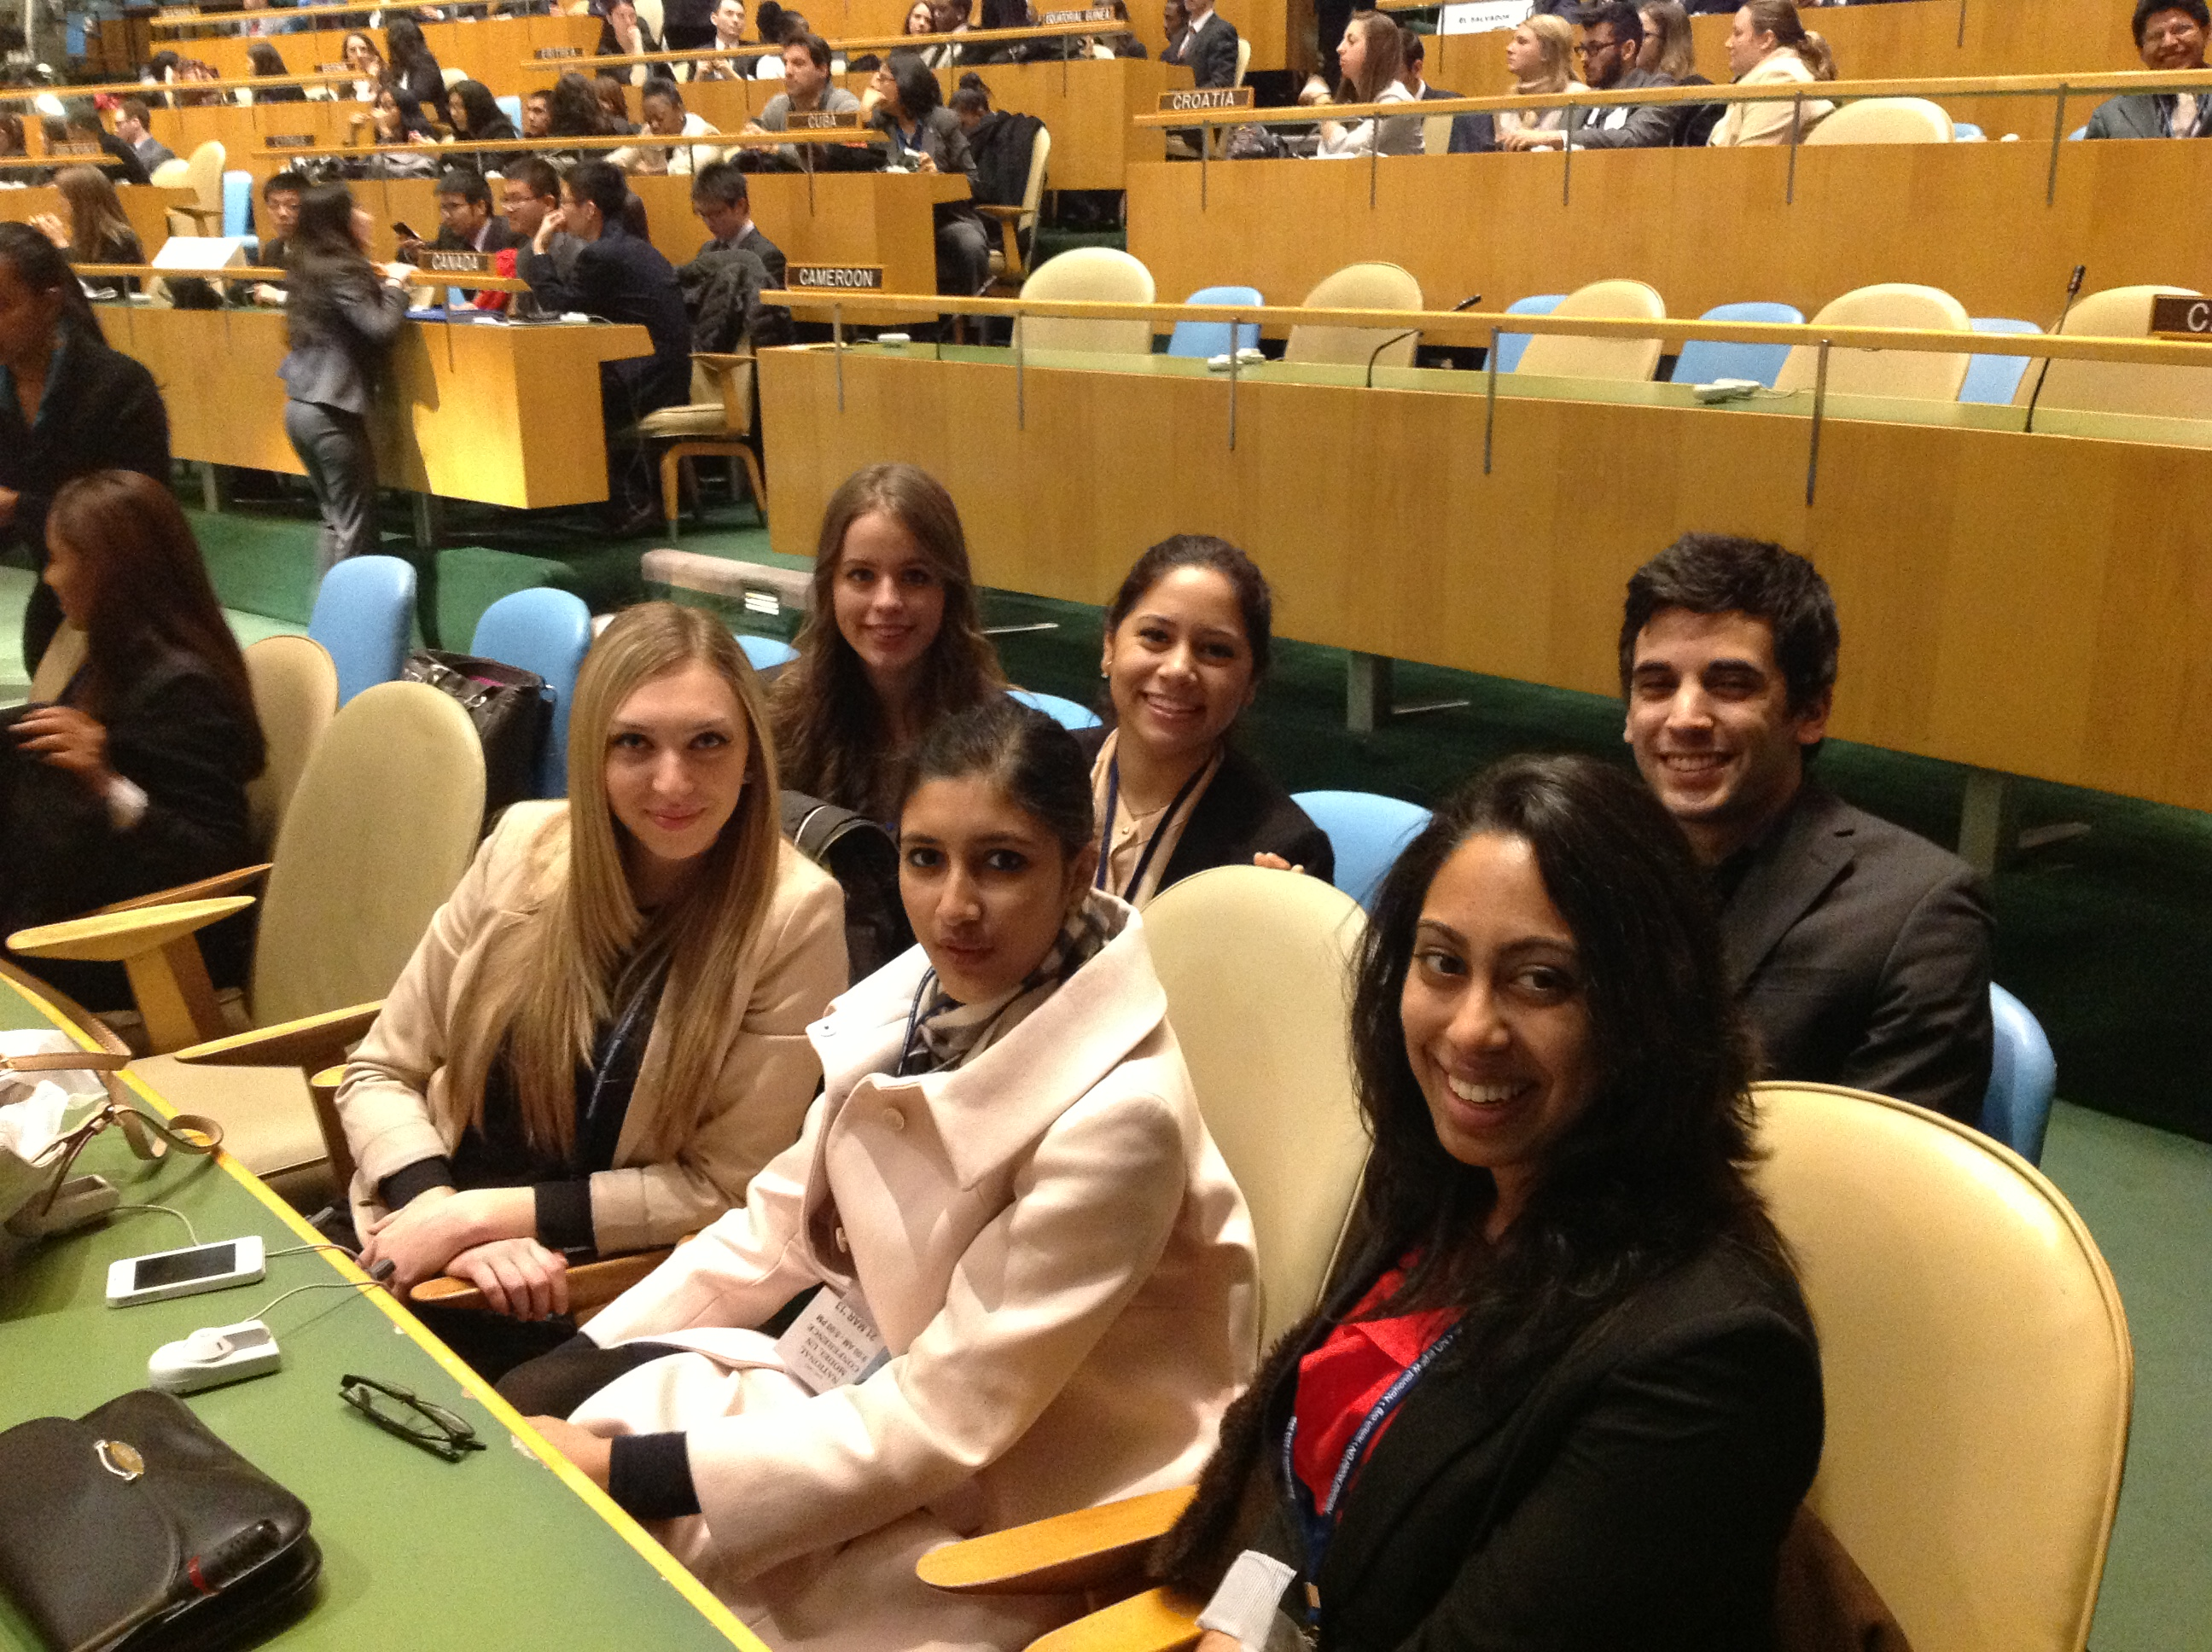 Pace University New York City students in the General Assembly Room at the 2013 National Moden UN Conference.